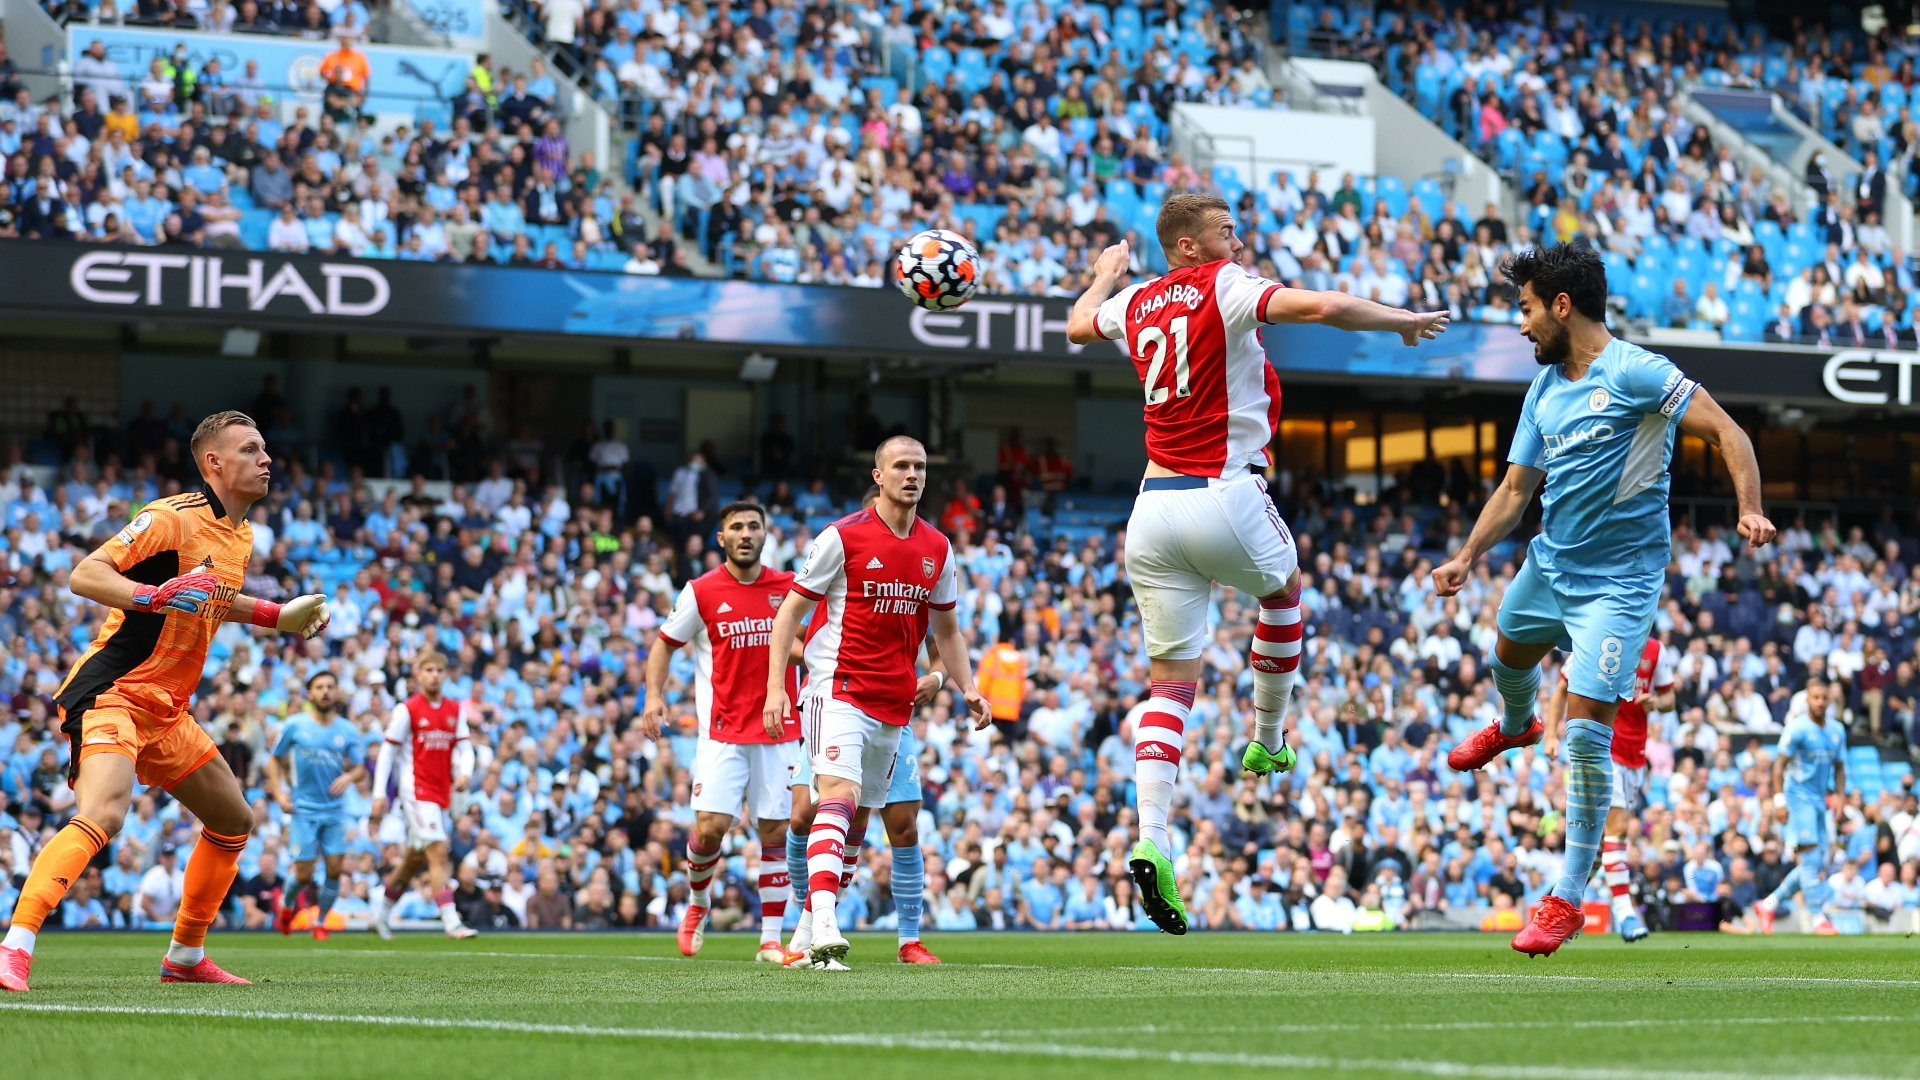 Man City vs Arsenal Prediction, Player Analysis and Latest Update: Manchester City 5, Arsenal 0, 86m